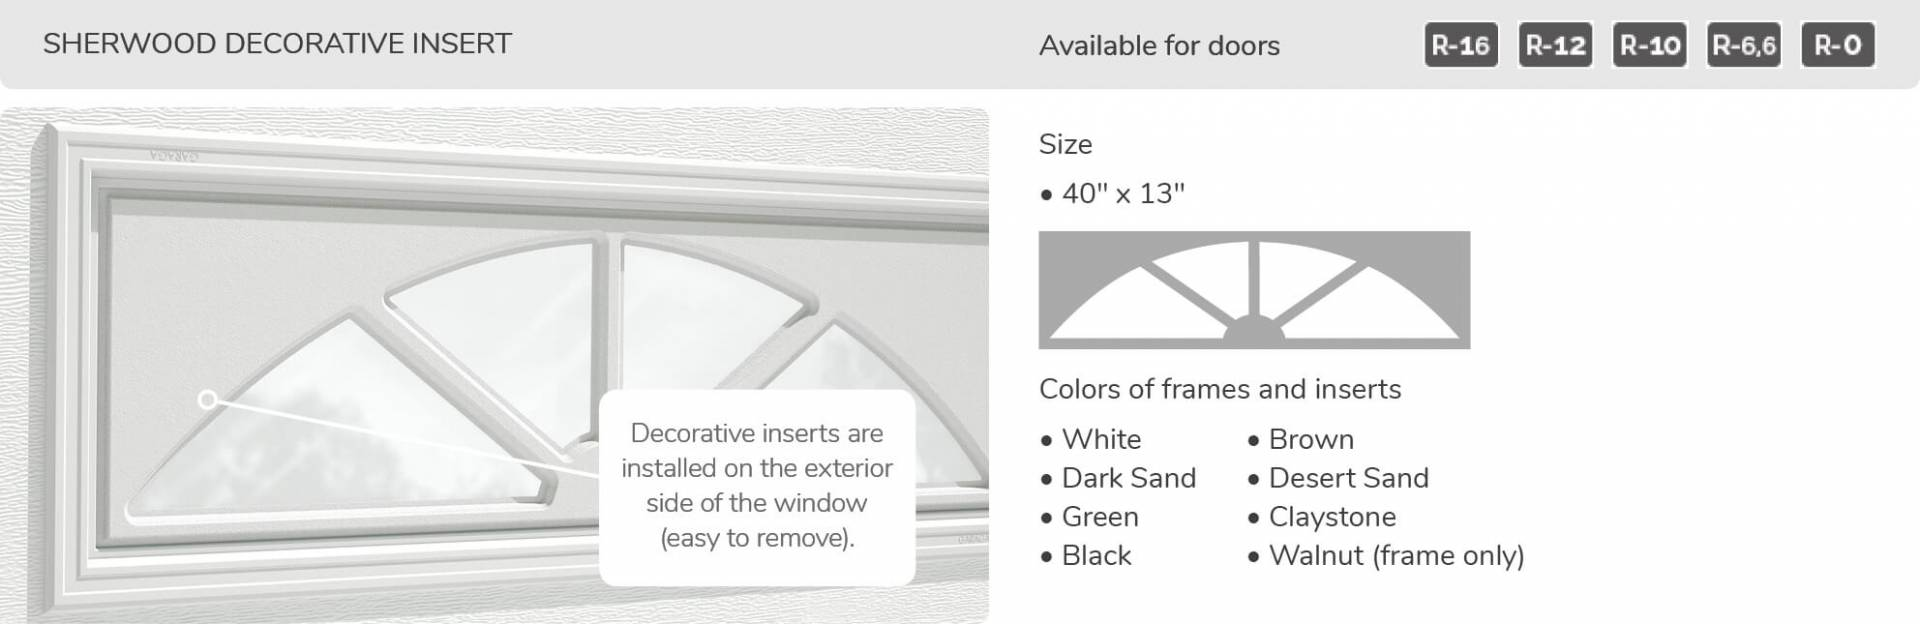 "Sherwood Decorative Insert, 40"" x 13"", available for doors R-16, R-12, R-10, R-6.6, R-0"